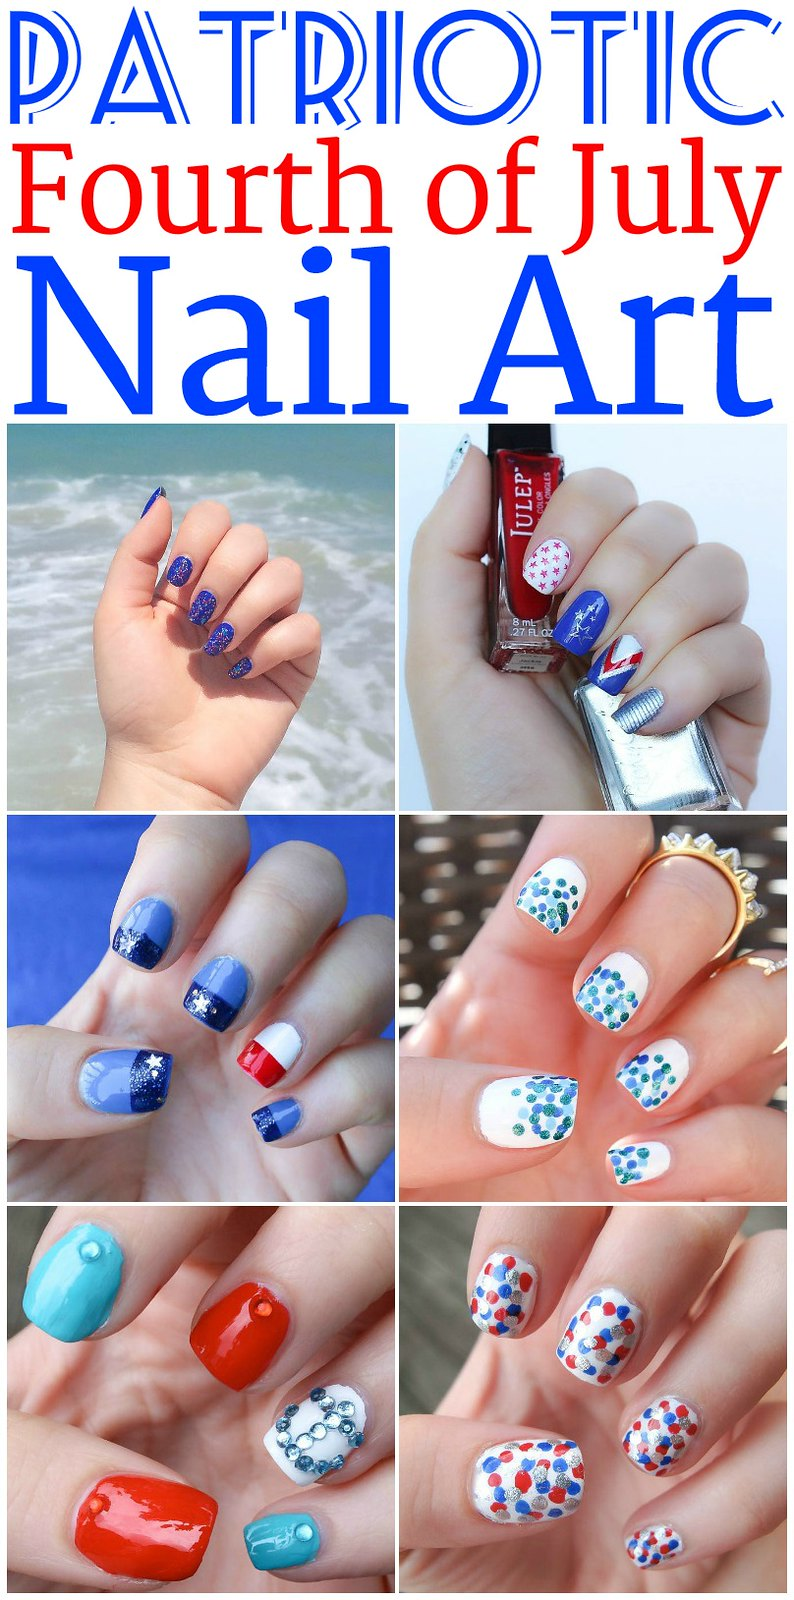 Patriotic Fourth of July Nail Art Inspiration | 4th of July | Manicures Beauty Nails Mani | Red White & Blue on Living After Midnite by Jackie Giardina